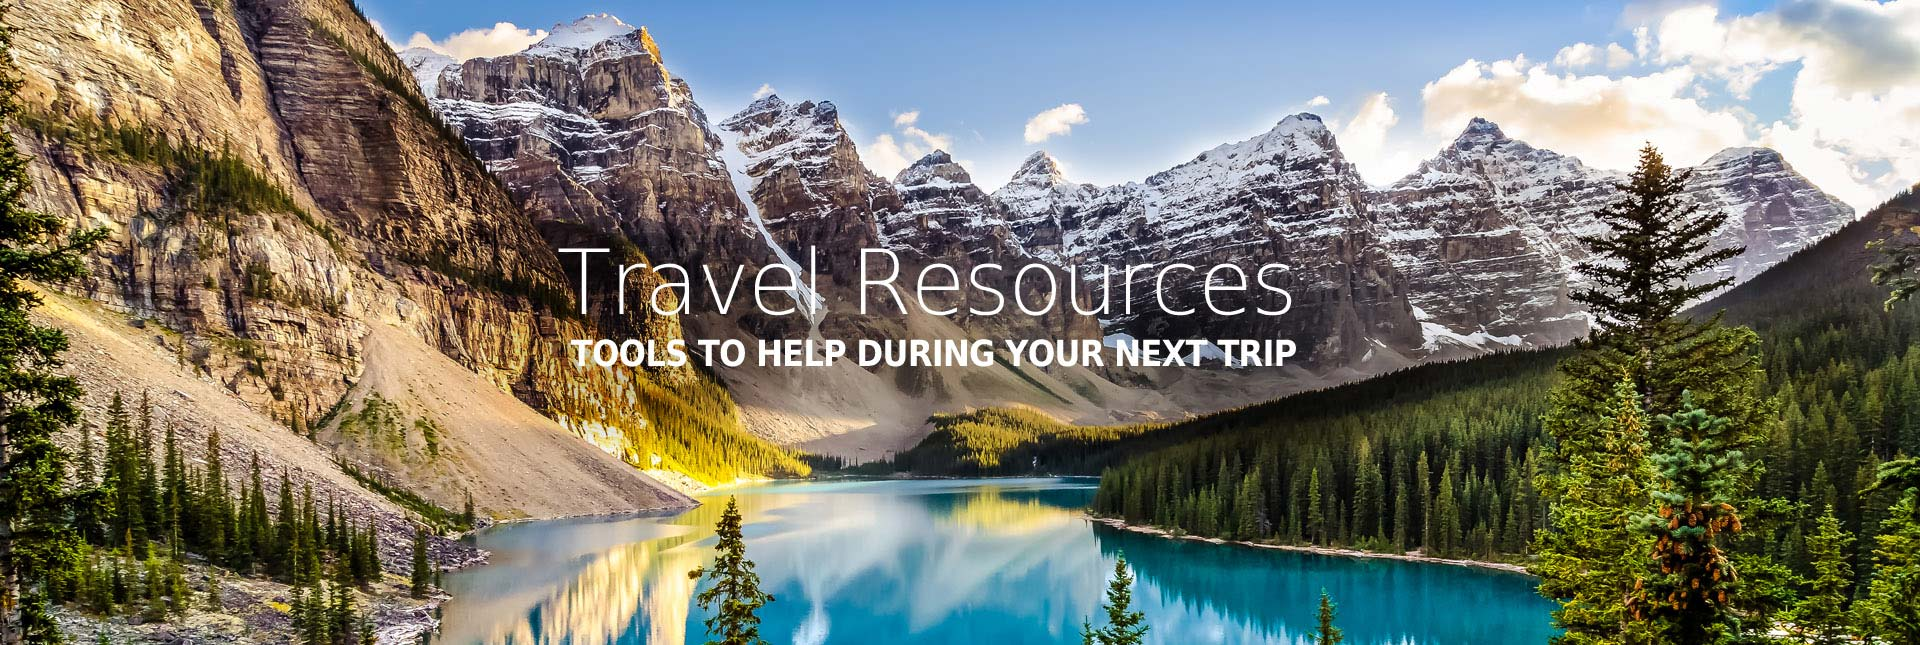 travelresources_smaller